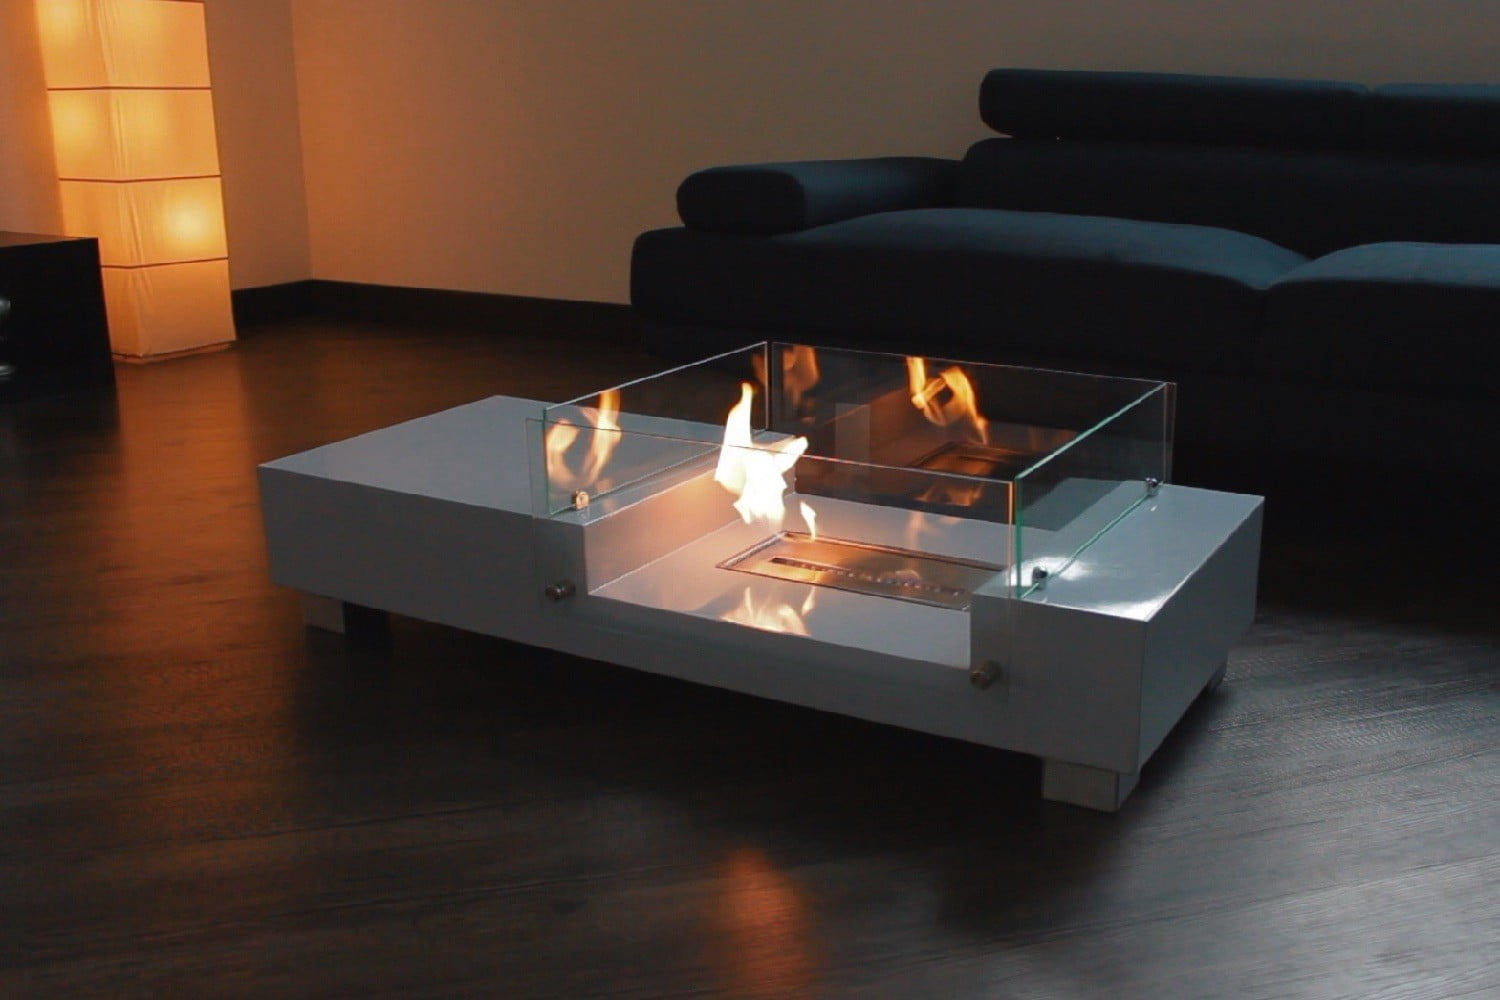 Kickstarter S Fireplace Coffee Table Is So Hot Right Now Digital Trends